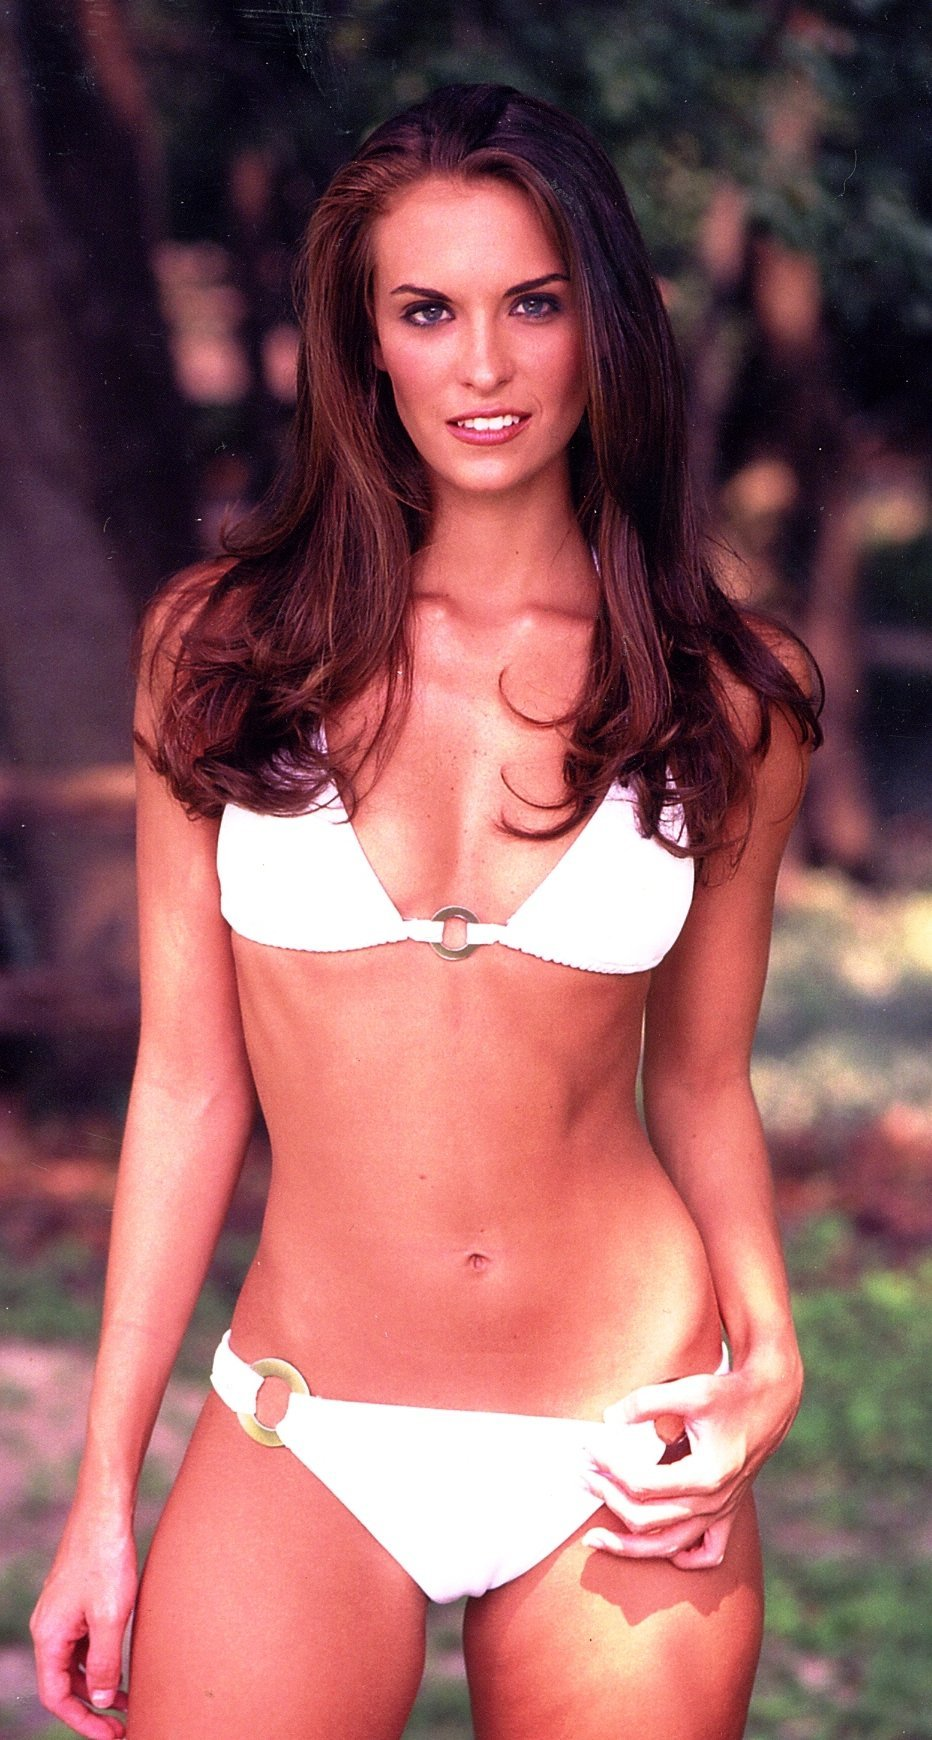 JAMIE HILL- MISS SC-USA, COMMERCIAL MODEL, H'WOOD ACTRESS.  She has starred in some 25 movies and television shows.